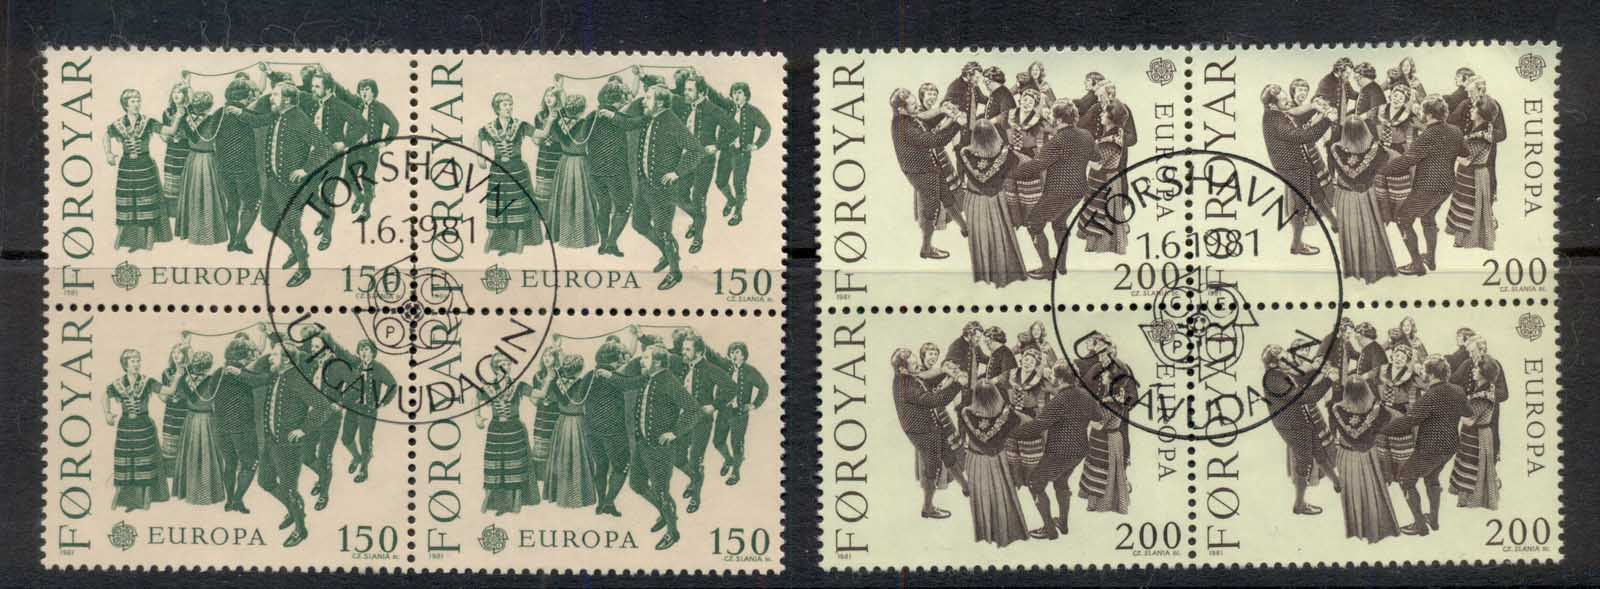 Faroe Is 1981 Europa, Dance blk4 FU